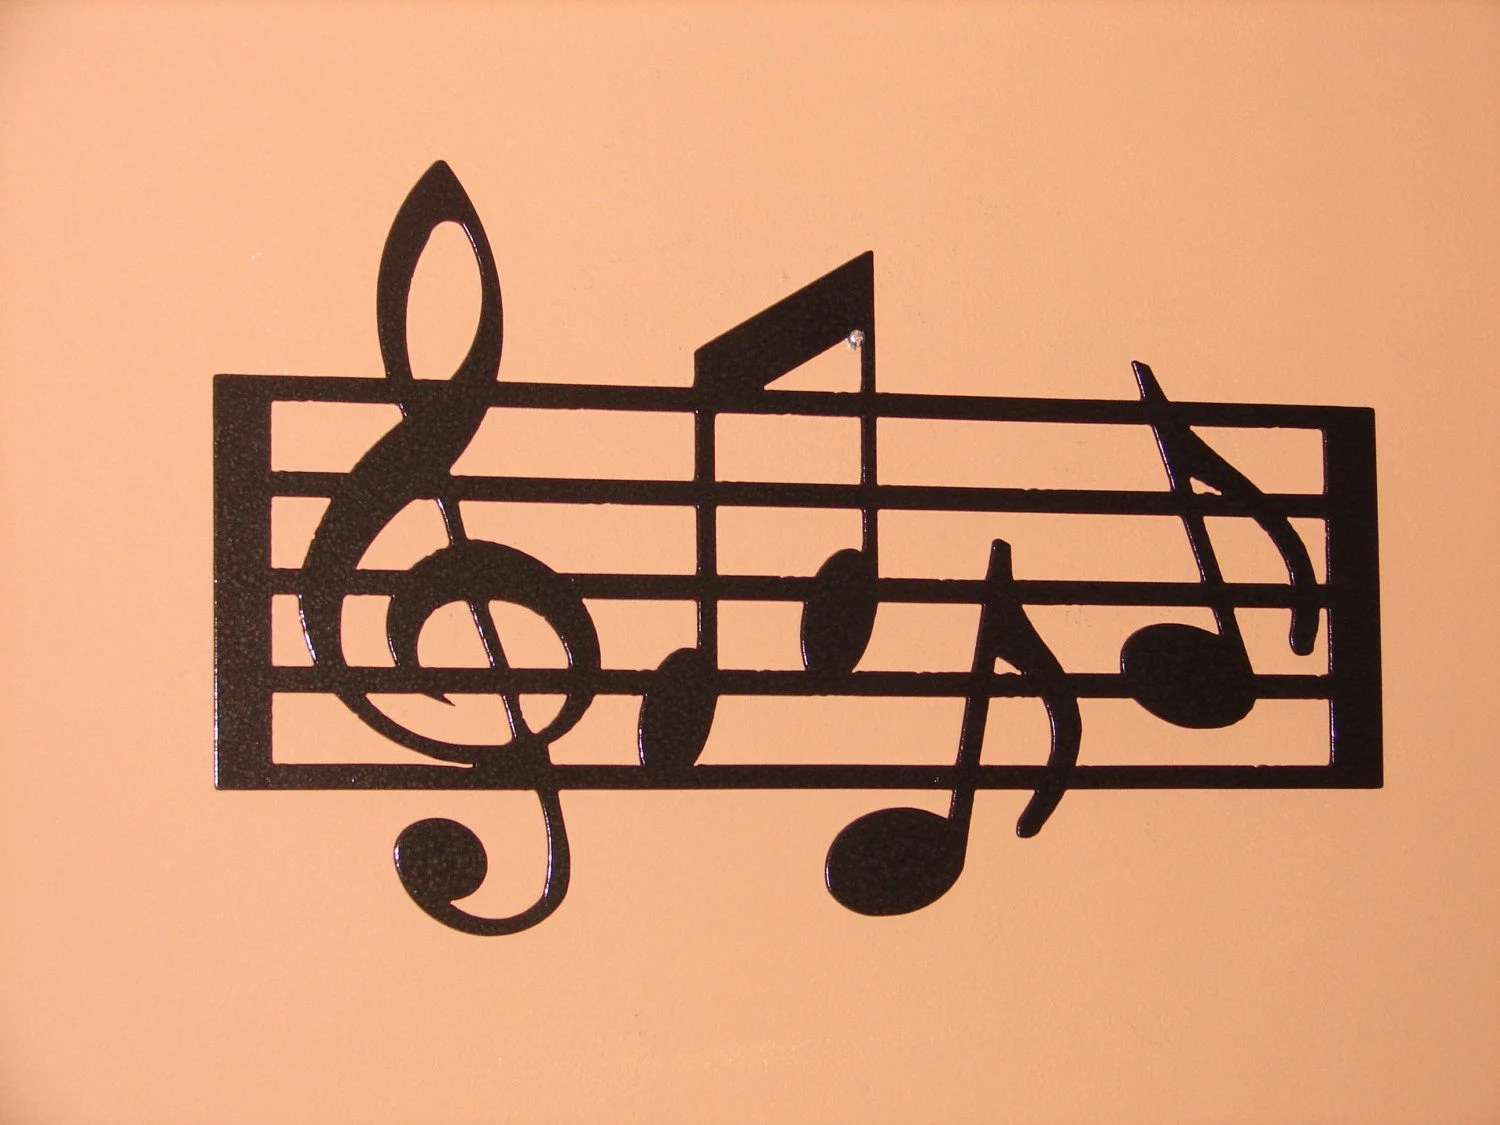 Metal Music Wall Art Metal Wall Art Home Decor Music Notes Musical 18 5in Long 12in